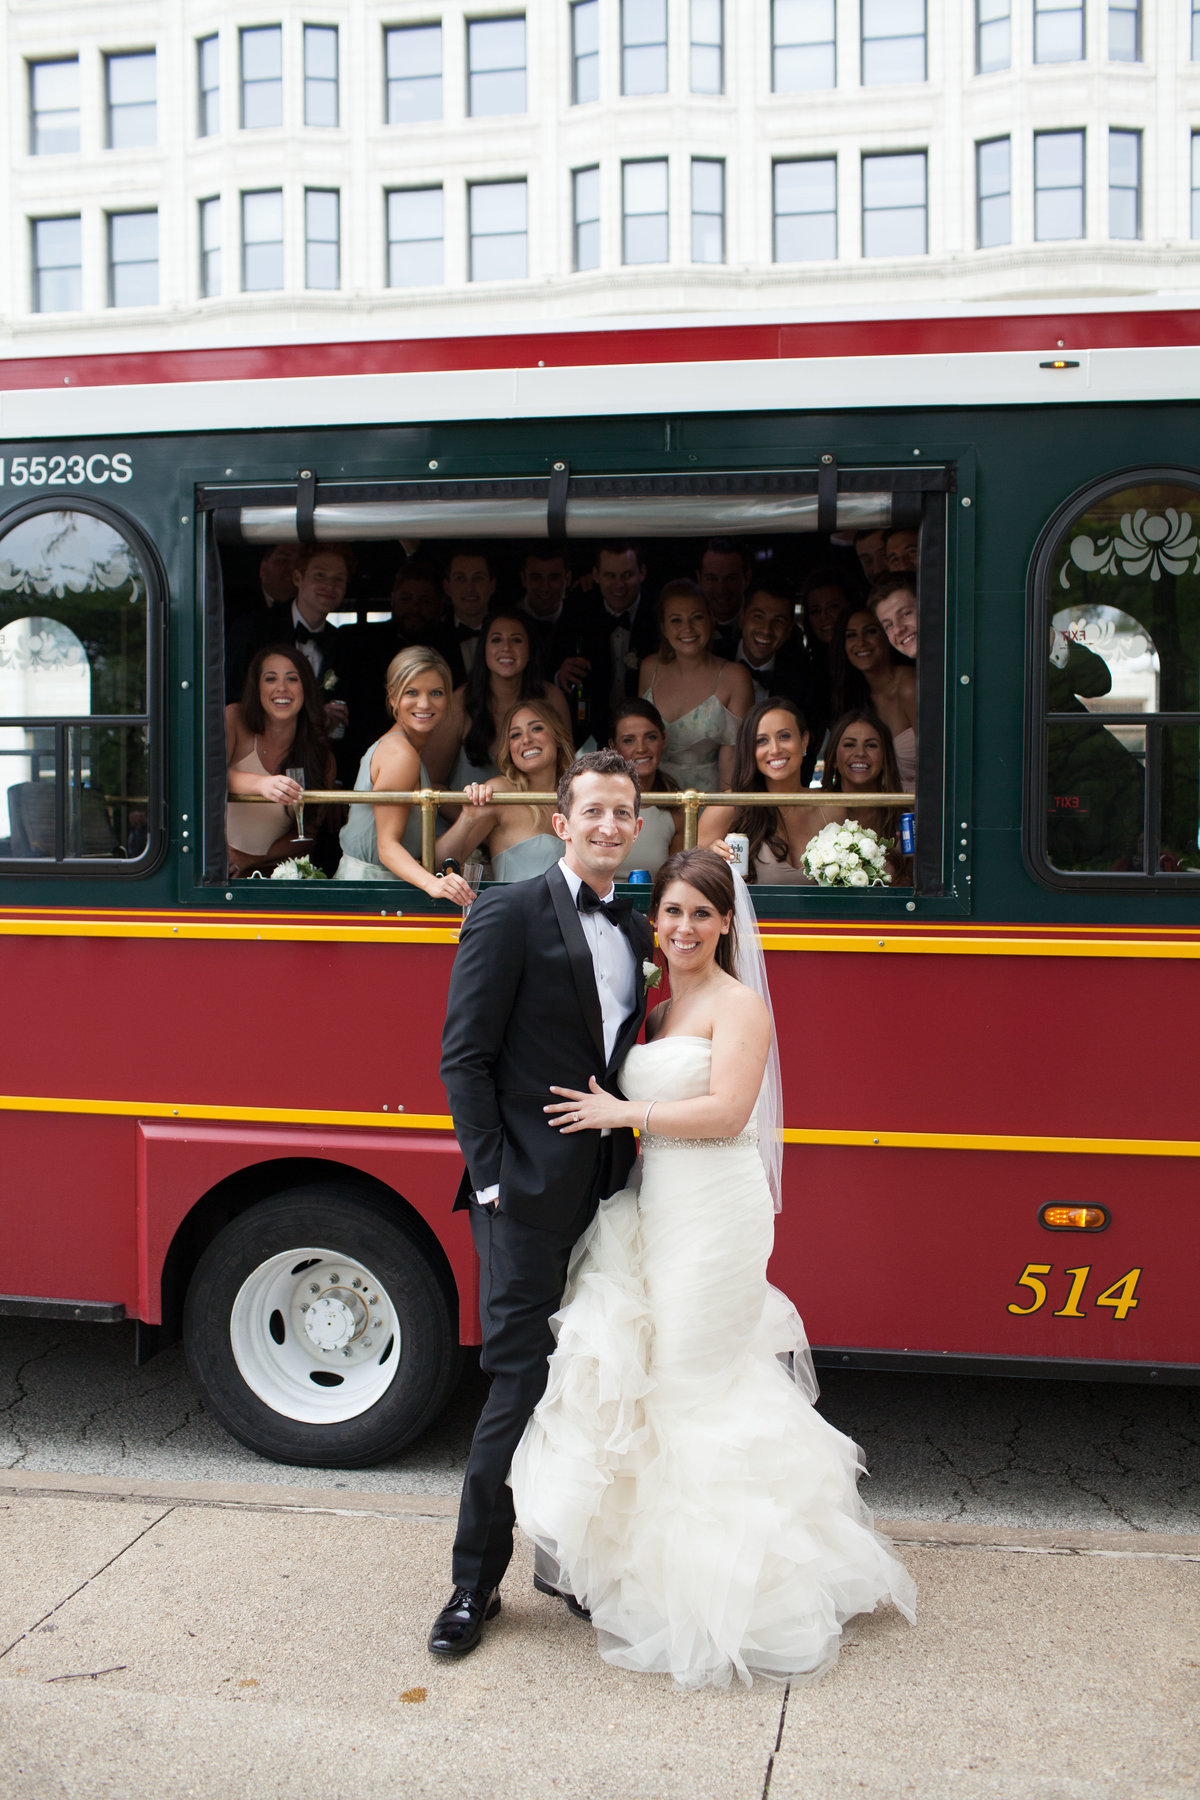 Nicole and Paul Wedding - Natalie Probst Photography 558